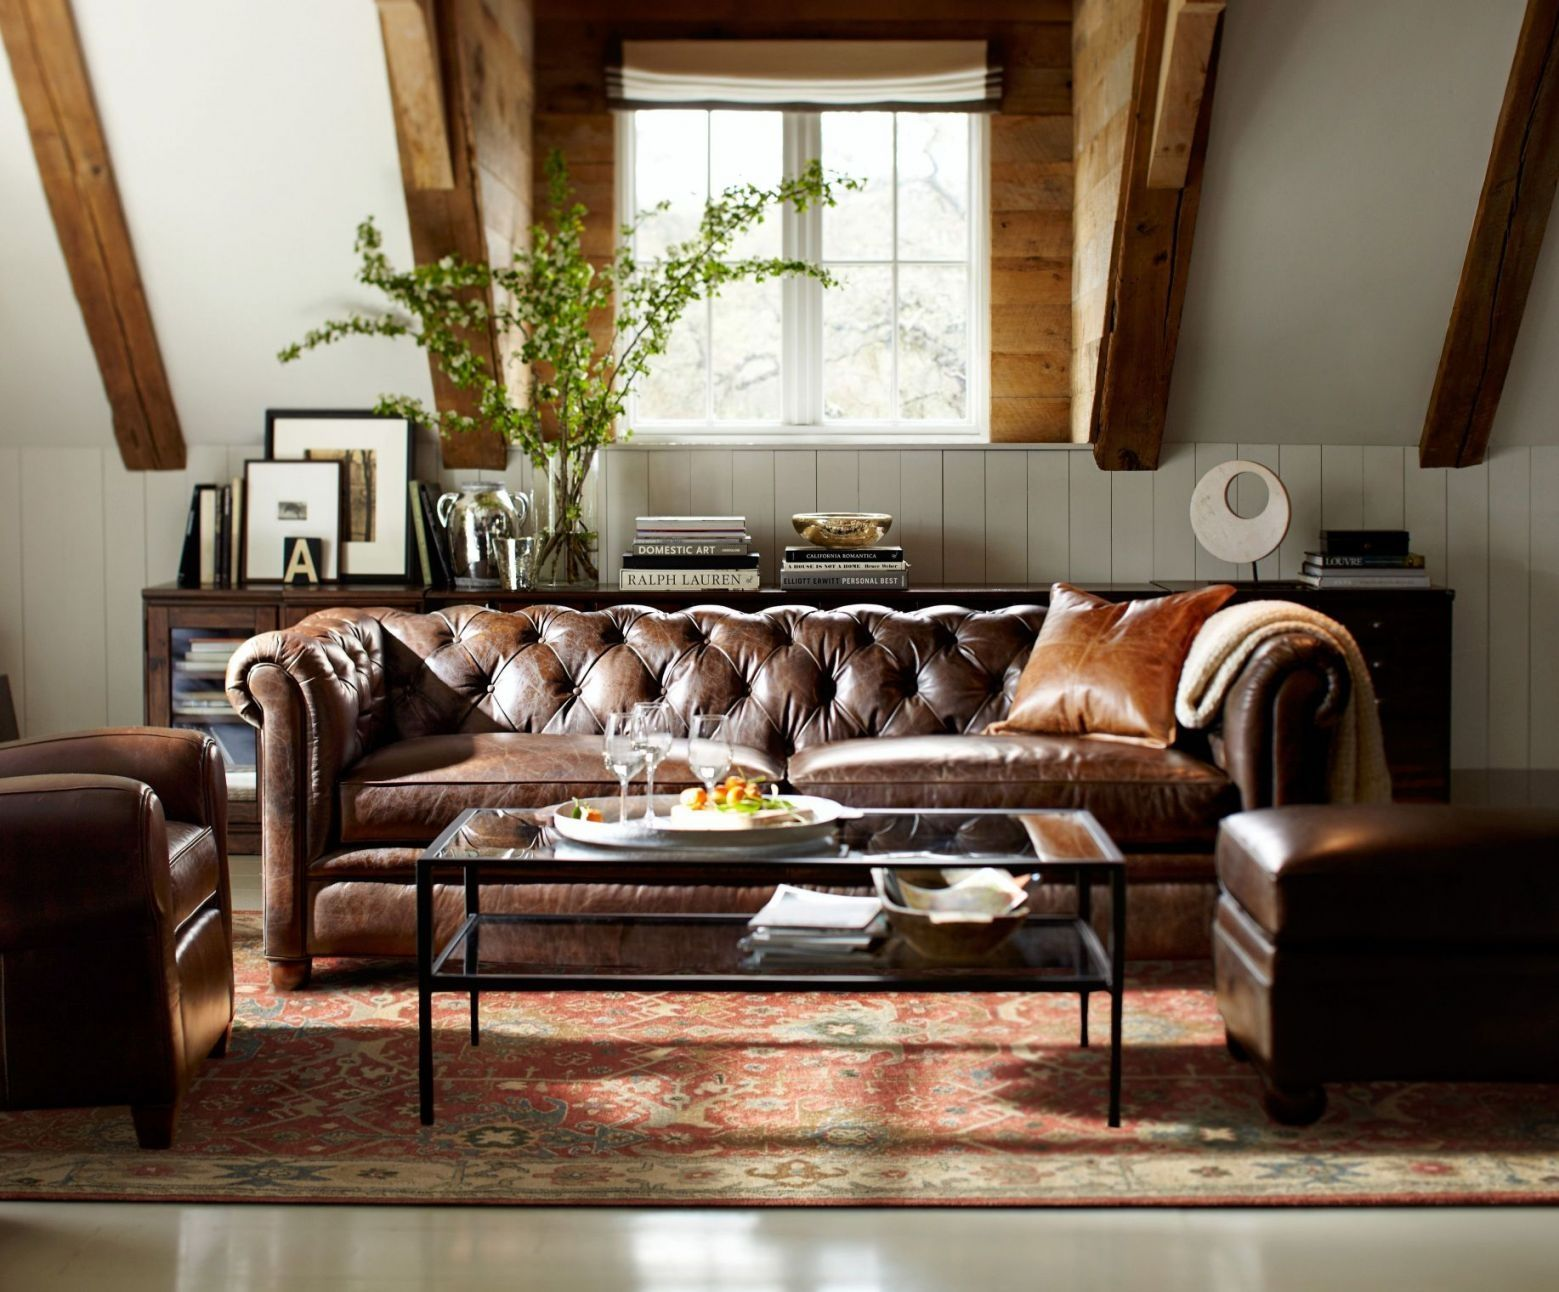 Interior Design Ideas With Chesterfield Sofa Leather Sofa Living Room Living Room Leather Chesterfield Sofa Living Room